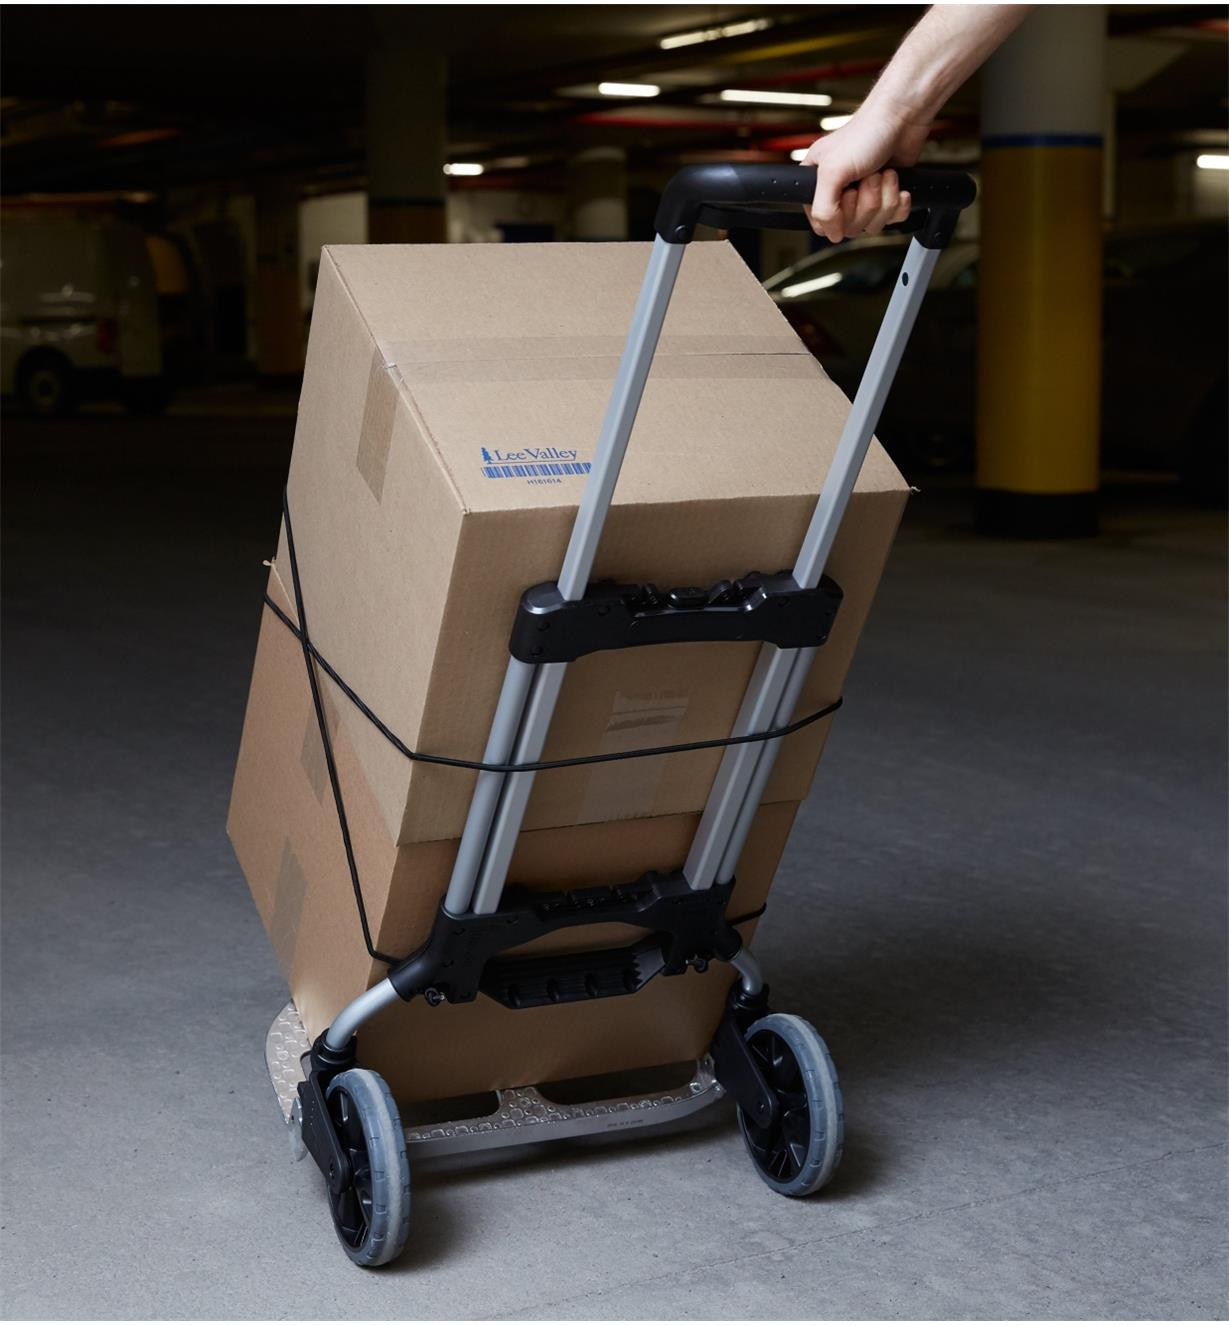 Using the Folding Hand Truck to move cardboard boxes